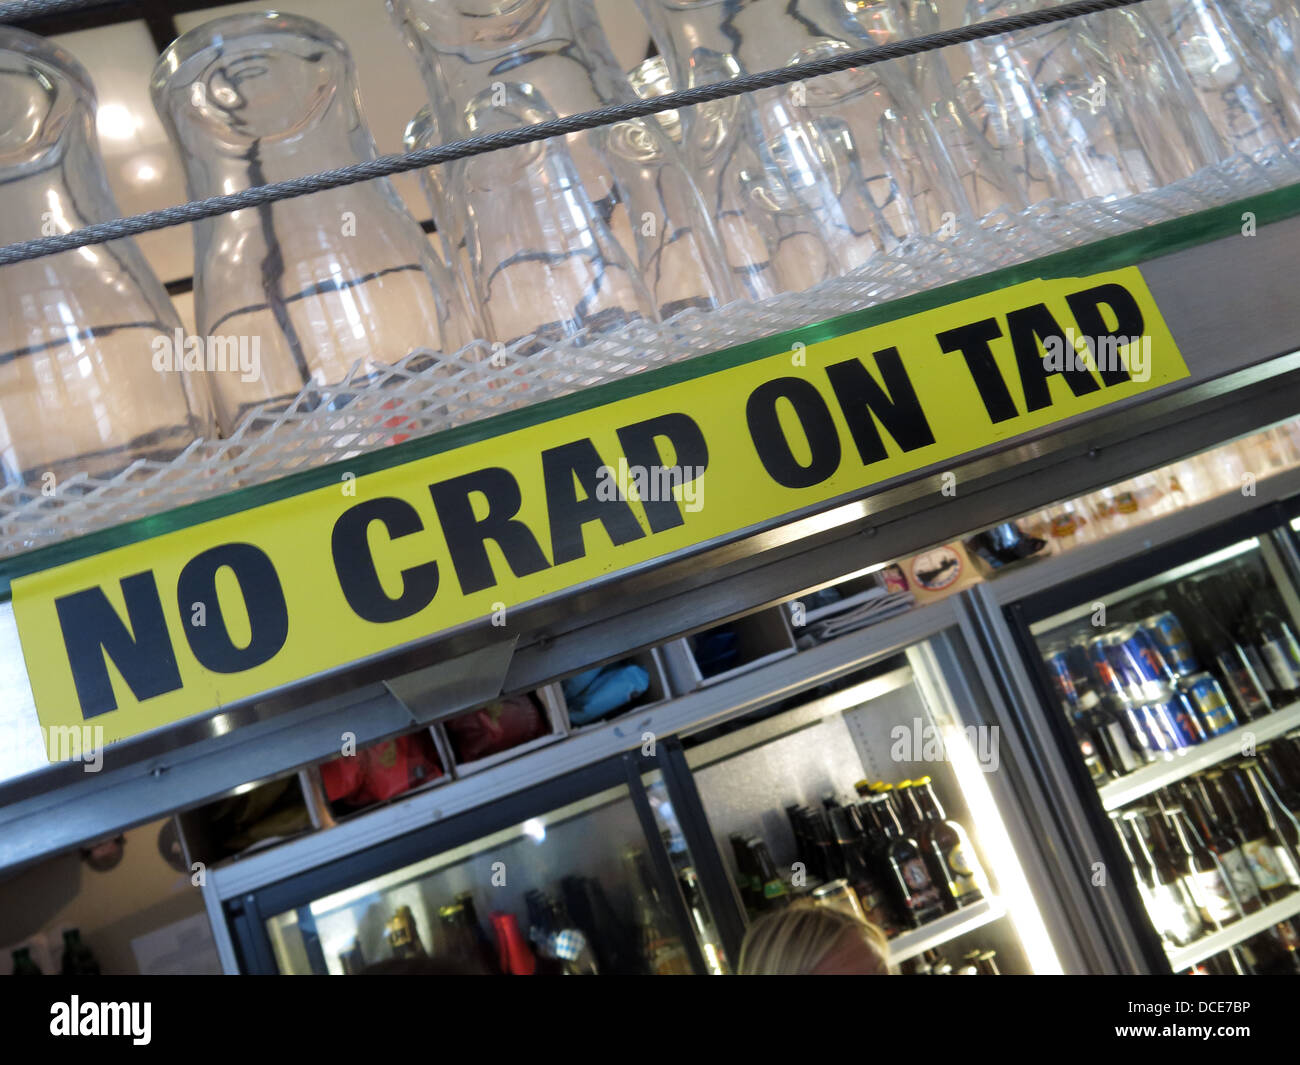 'No Crap On Tap' announces the Rake bar close to Borough market south London (Southwark ) - Stock Image